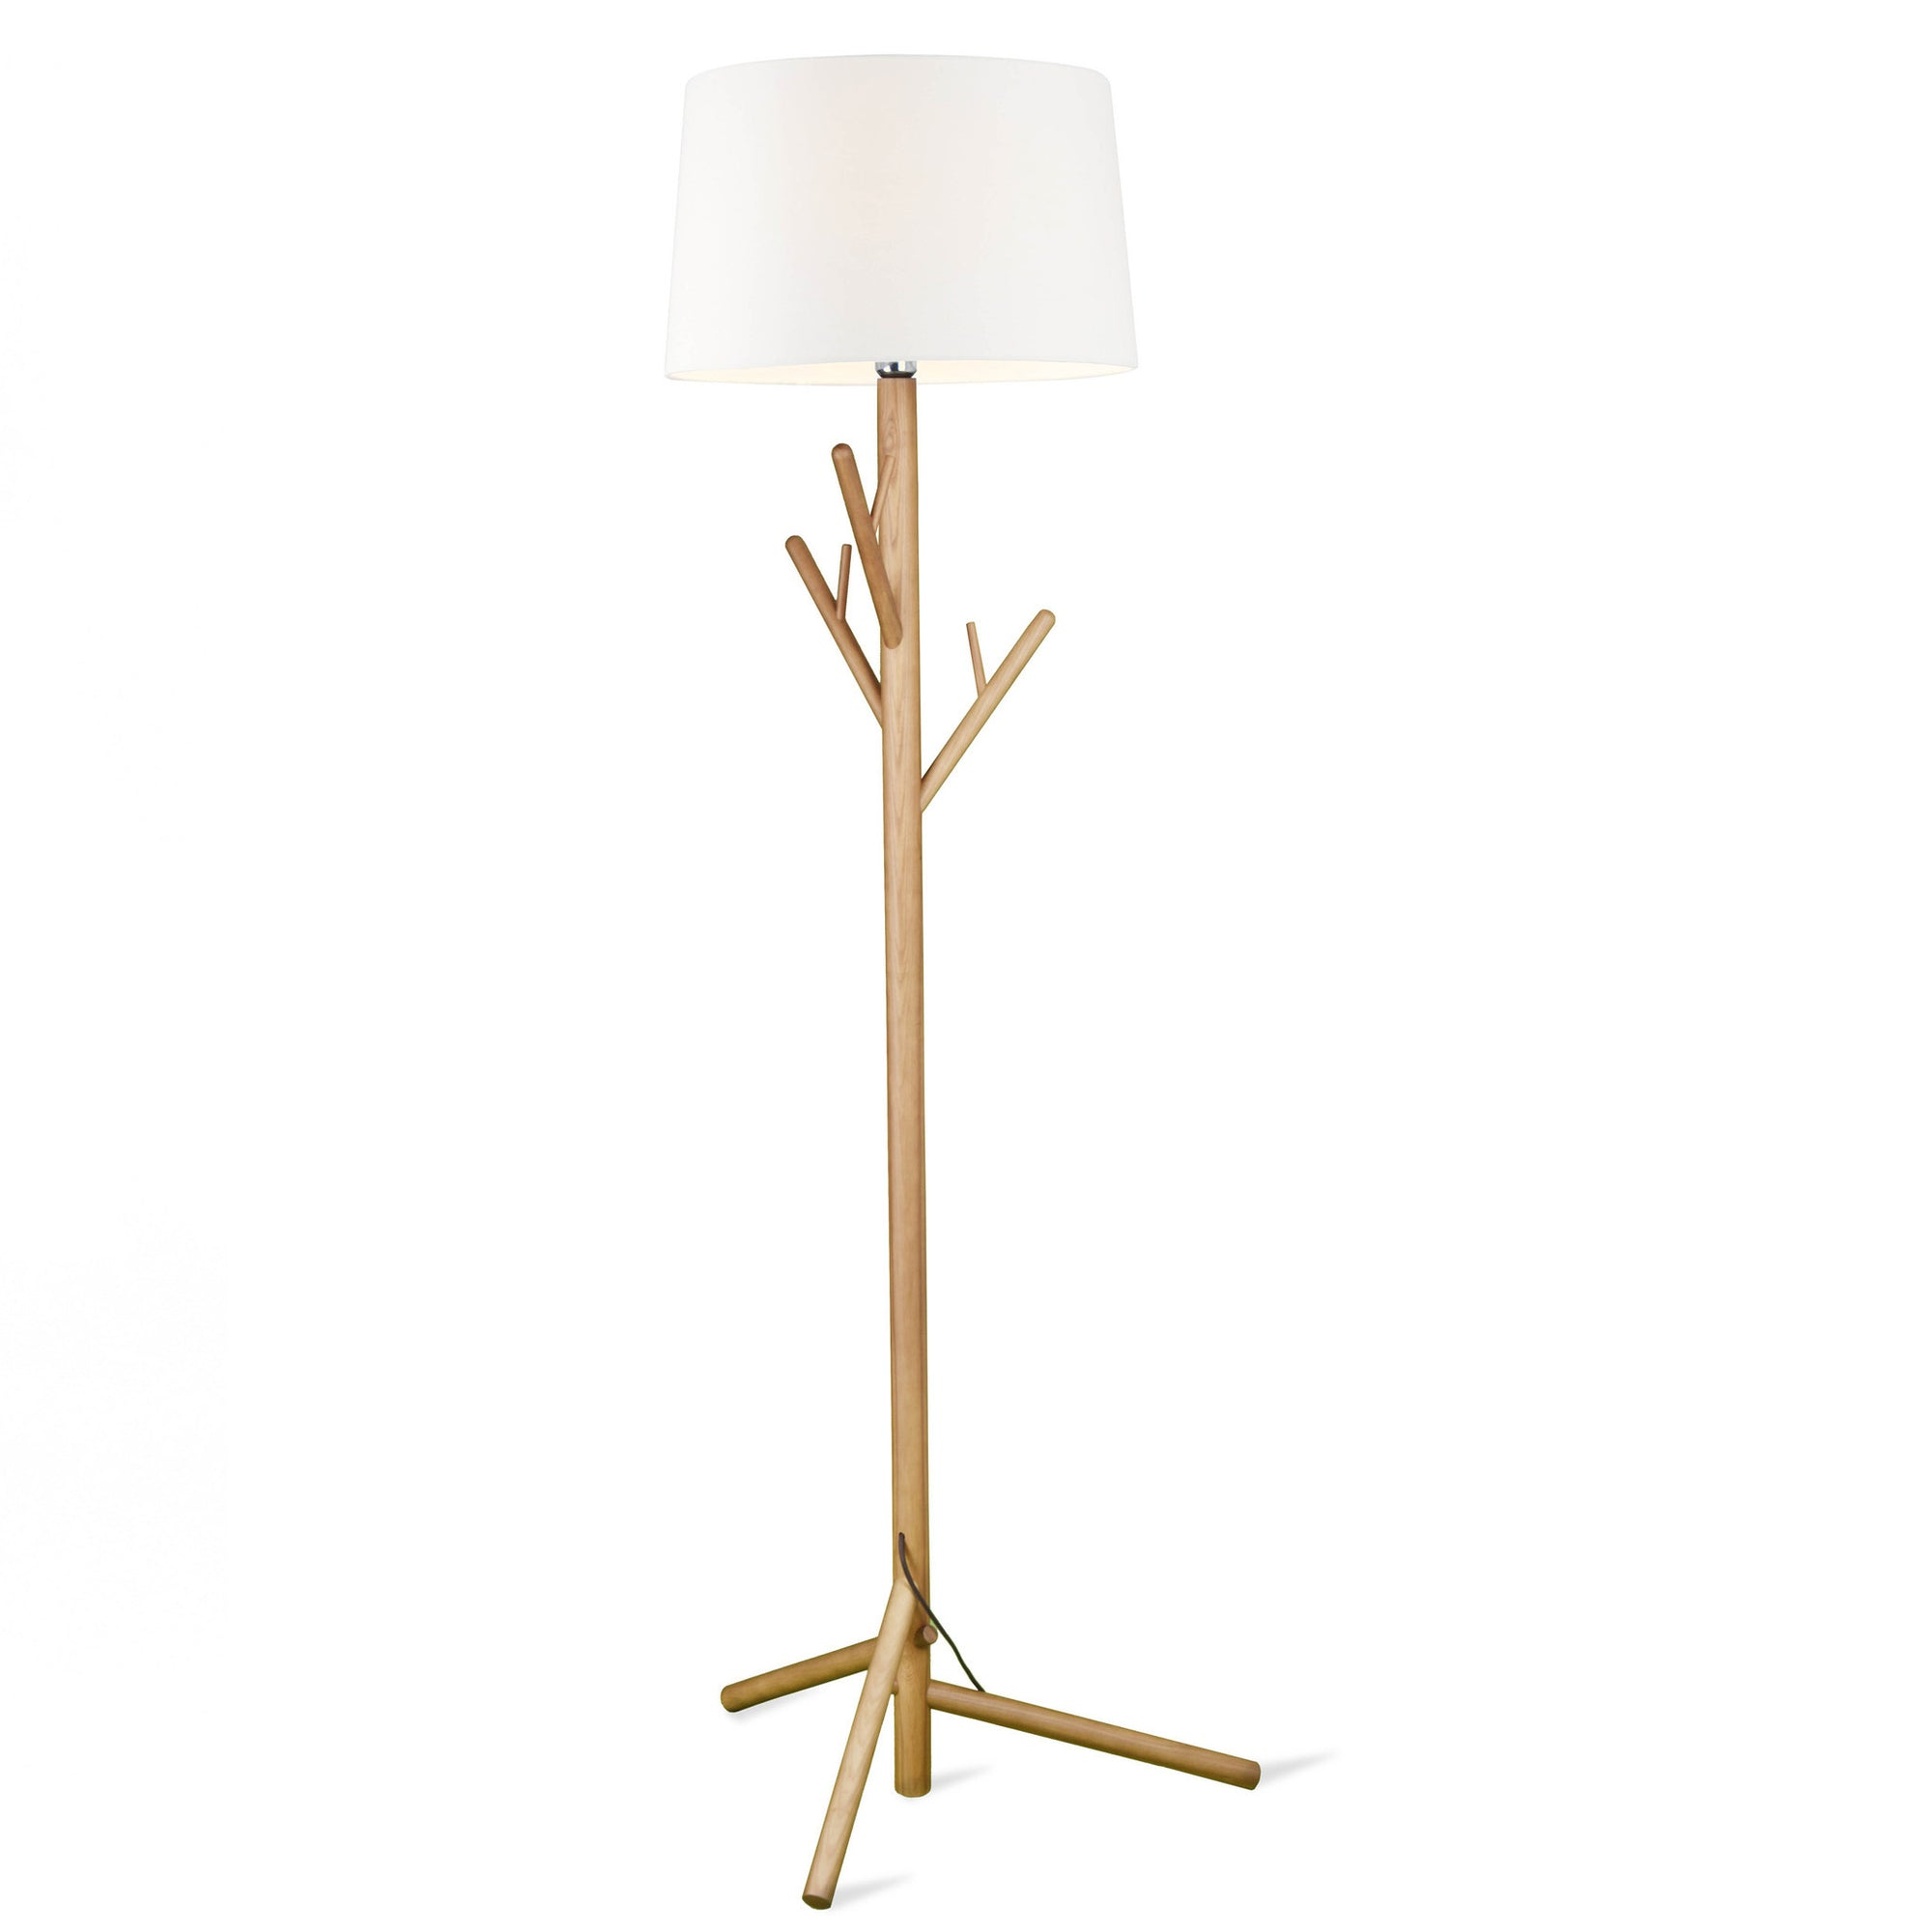 Floor Lamp - Hanger  Solid Wood Floor Lamp BPMT17-N